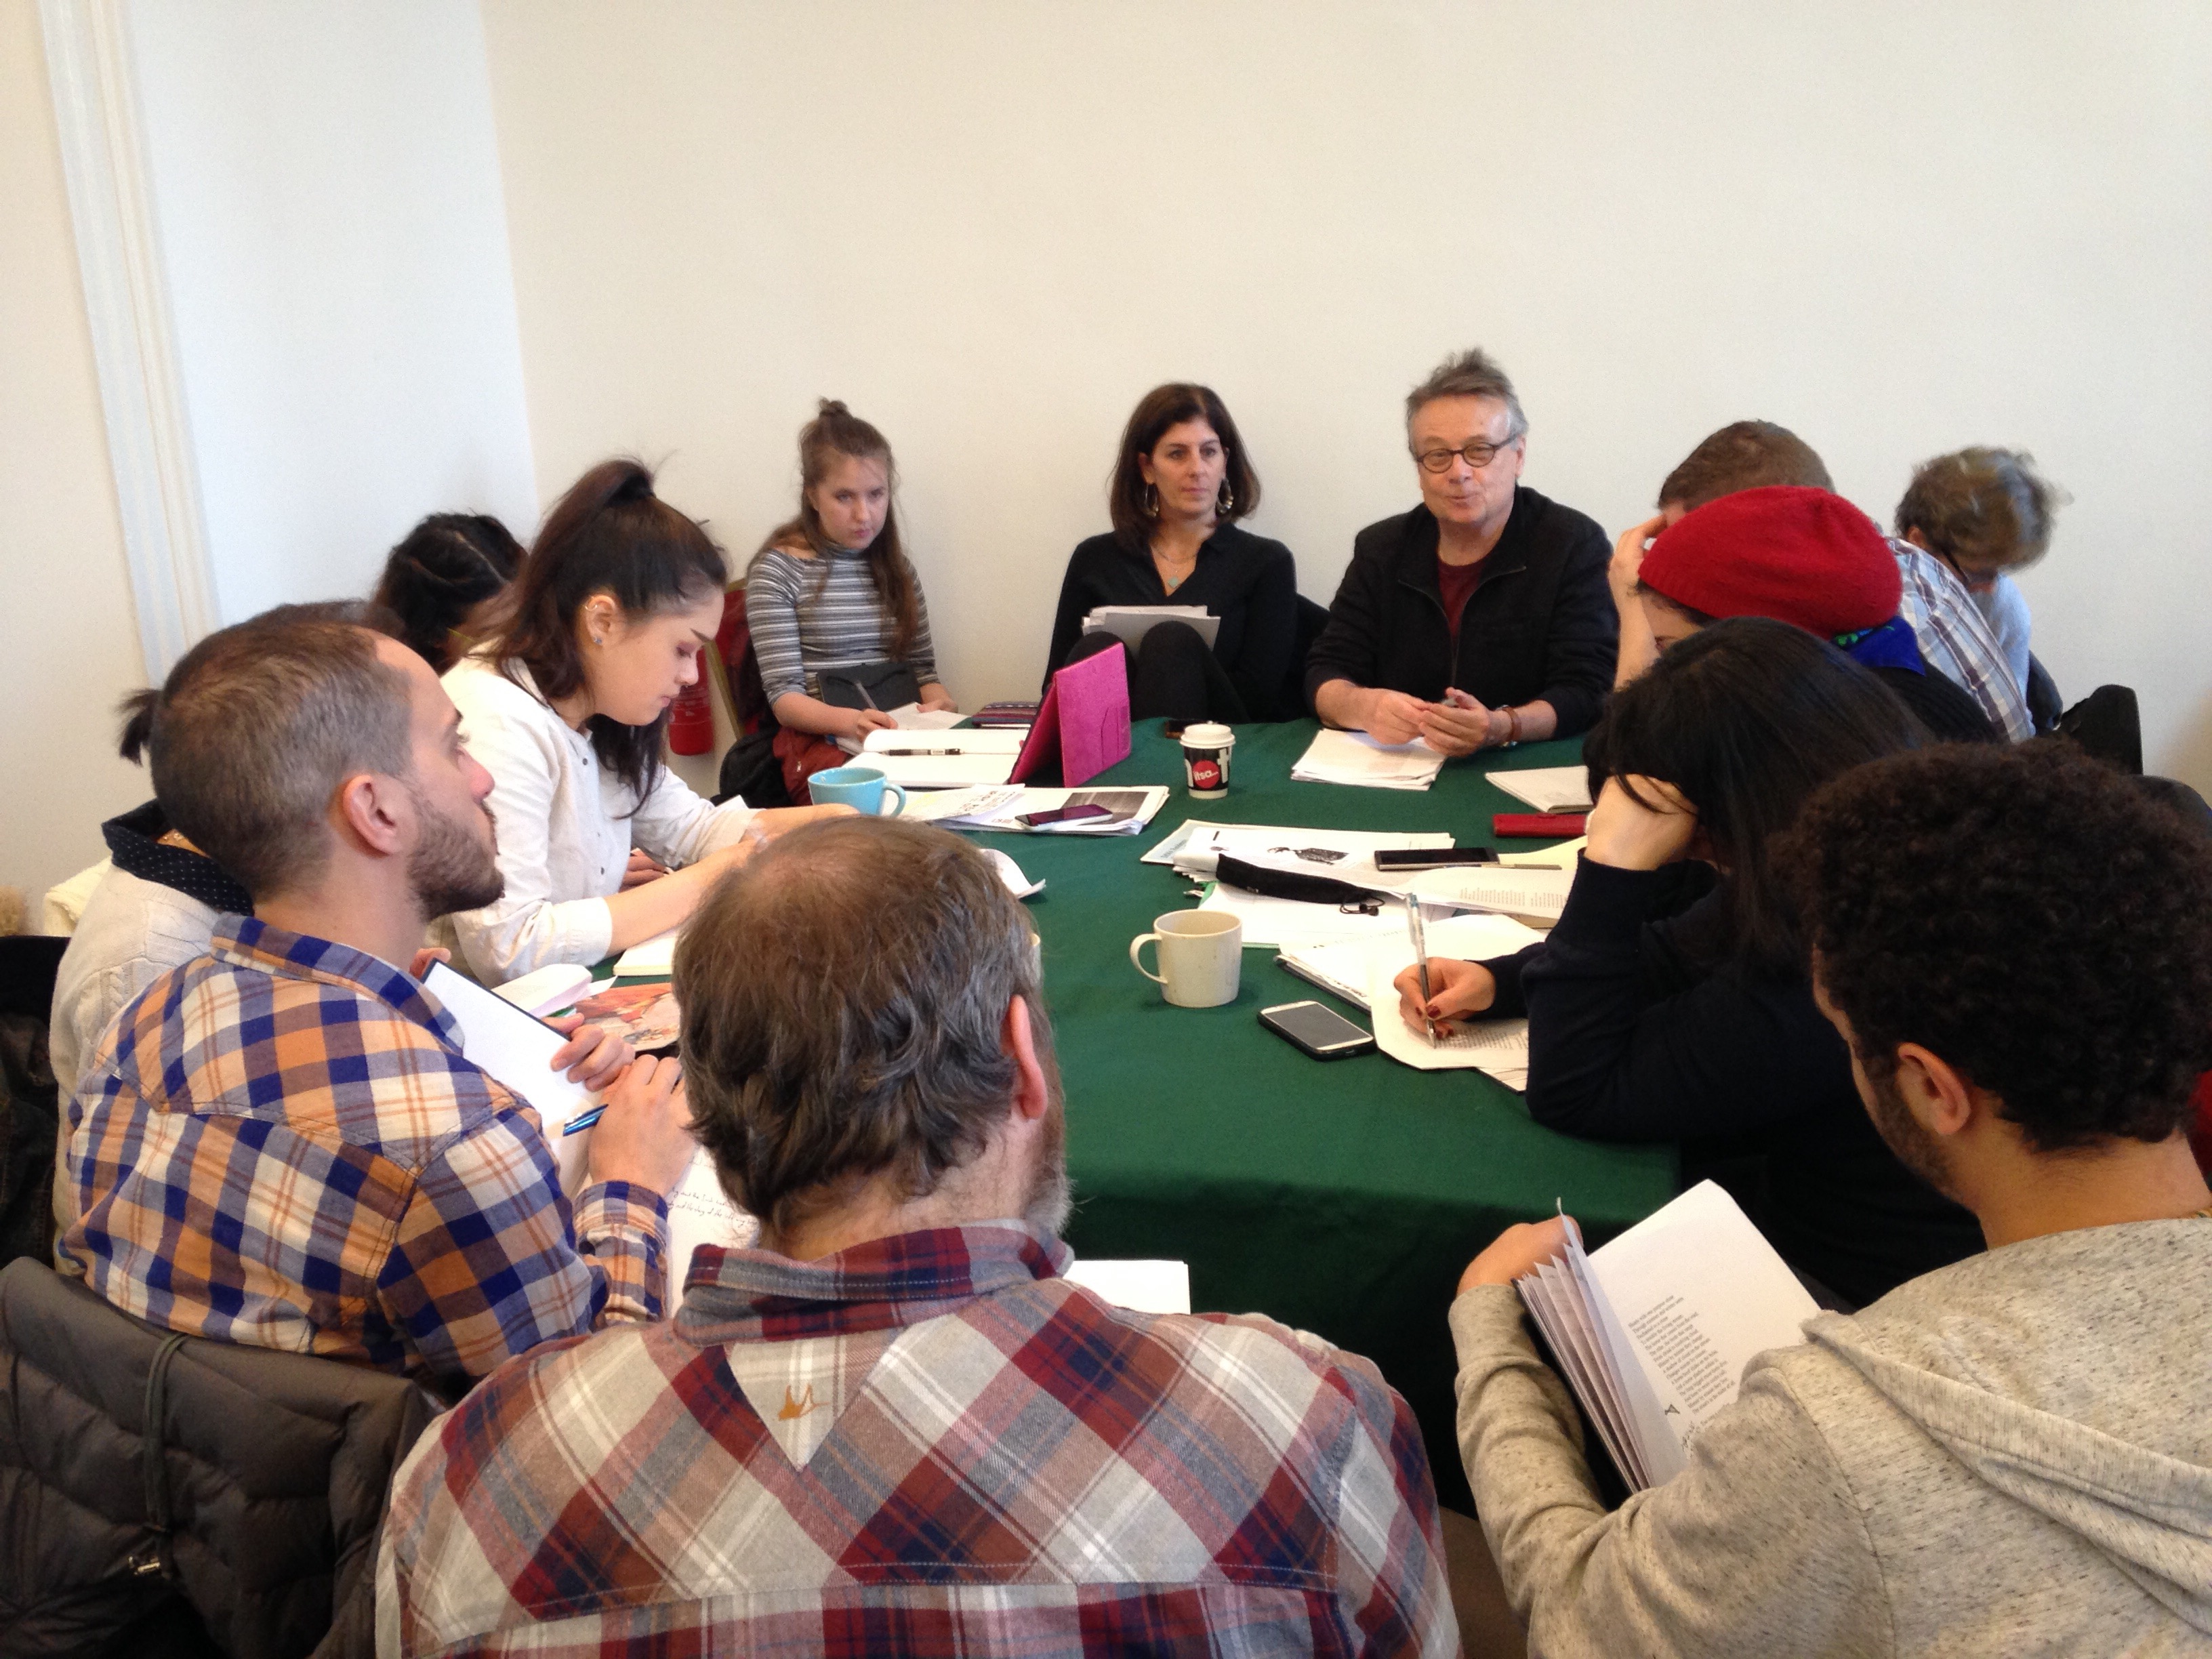 Workshop participants in session with David Lloyd and Emily Jacir at IMMA